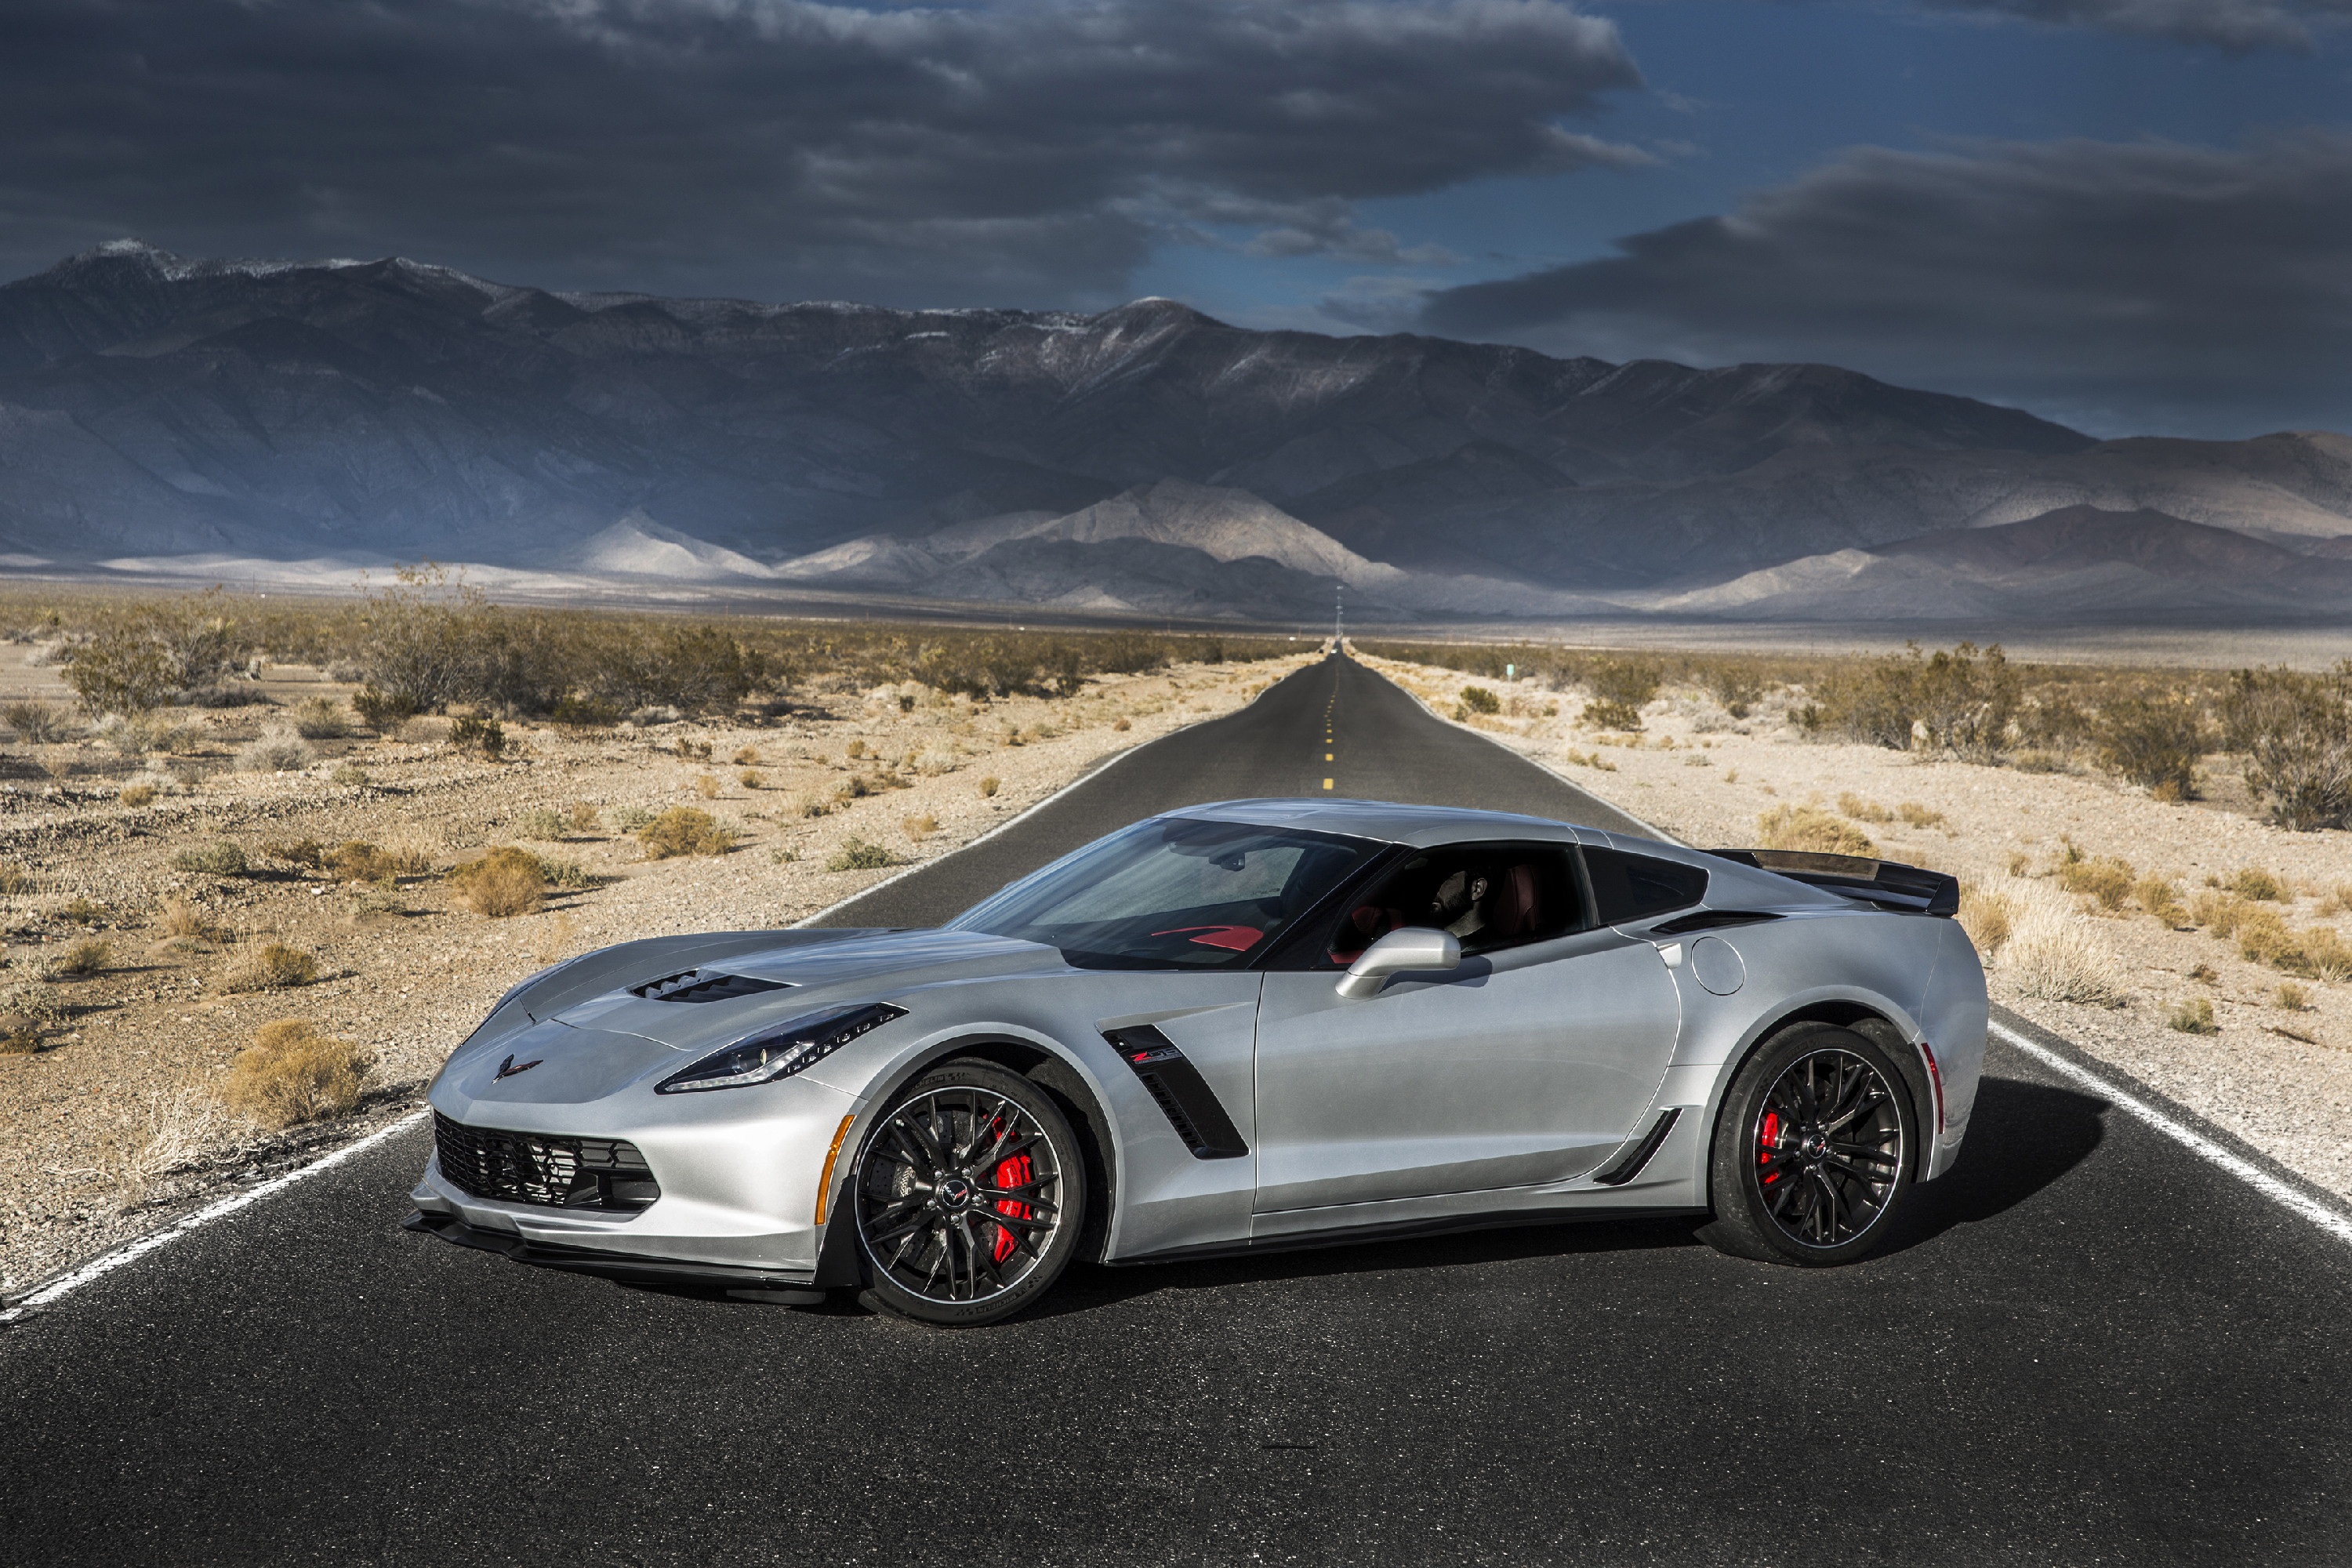 2016 Chevrolet Corvette Z06 New Car Wallpapers 3000x2000